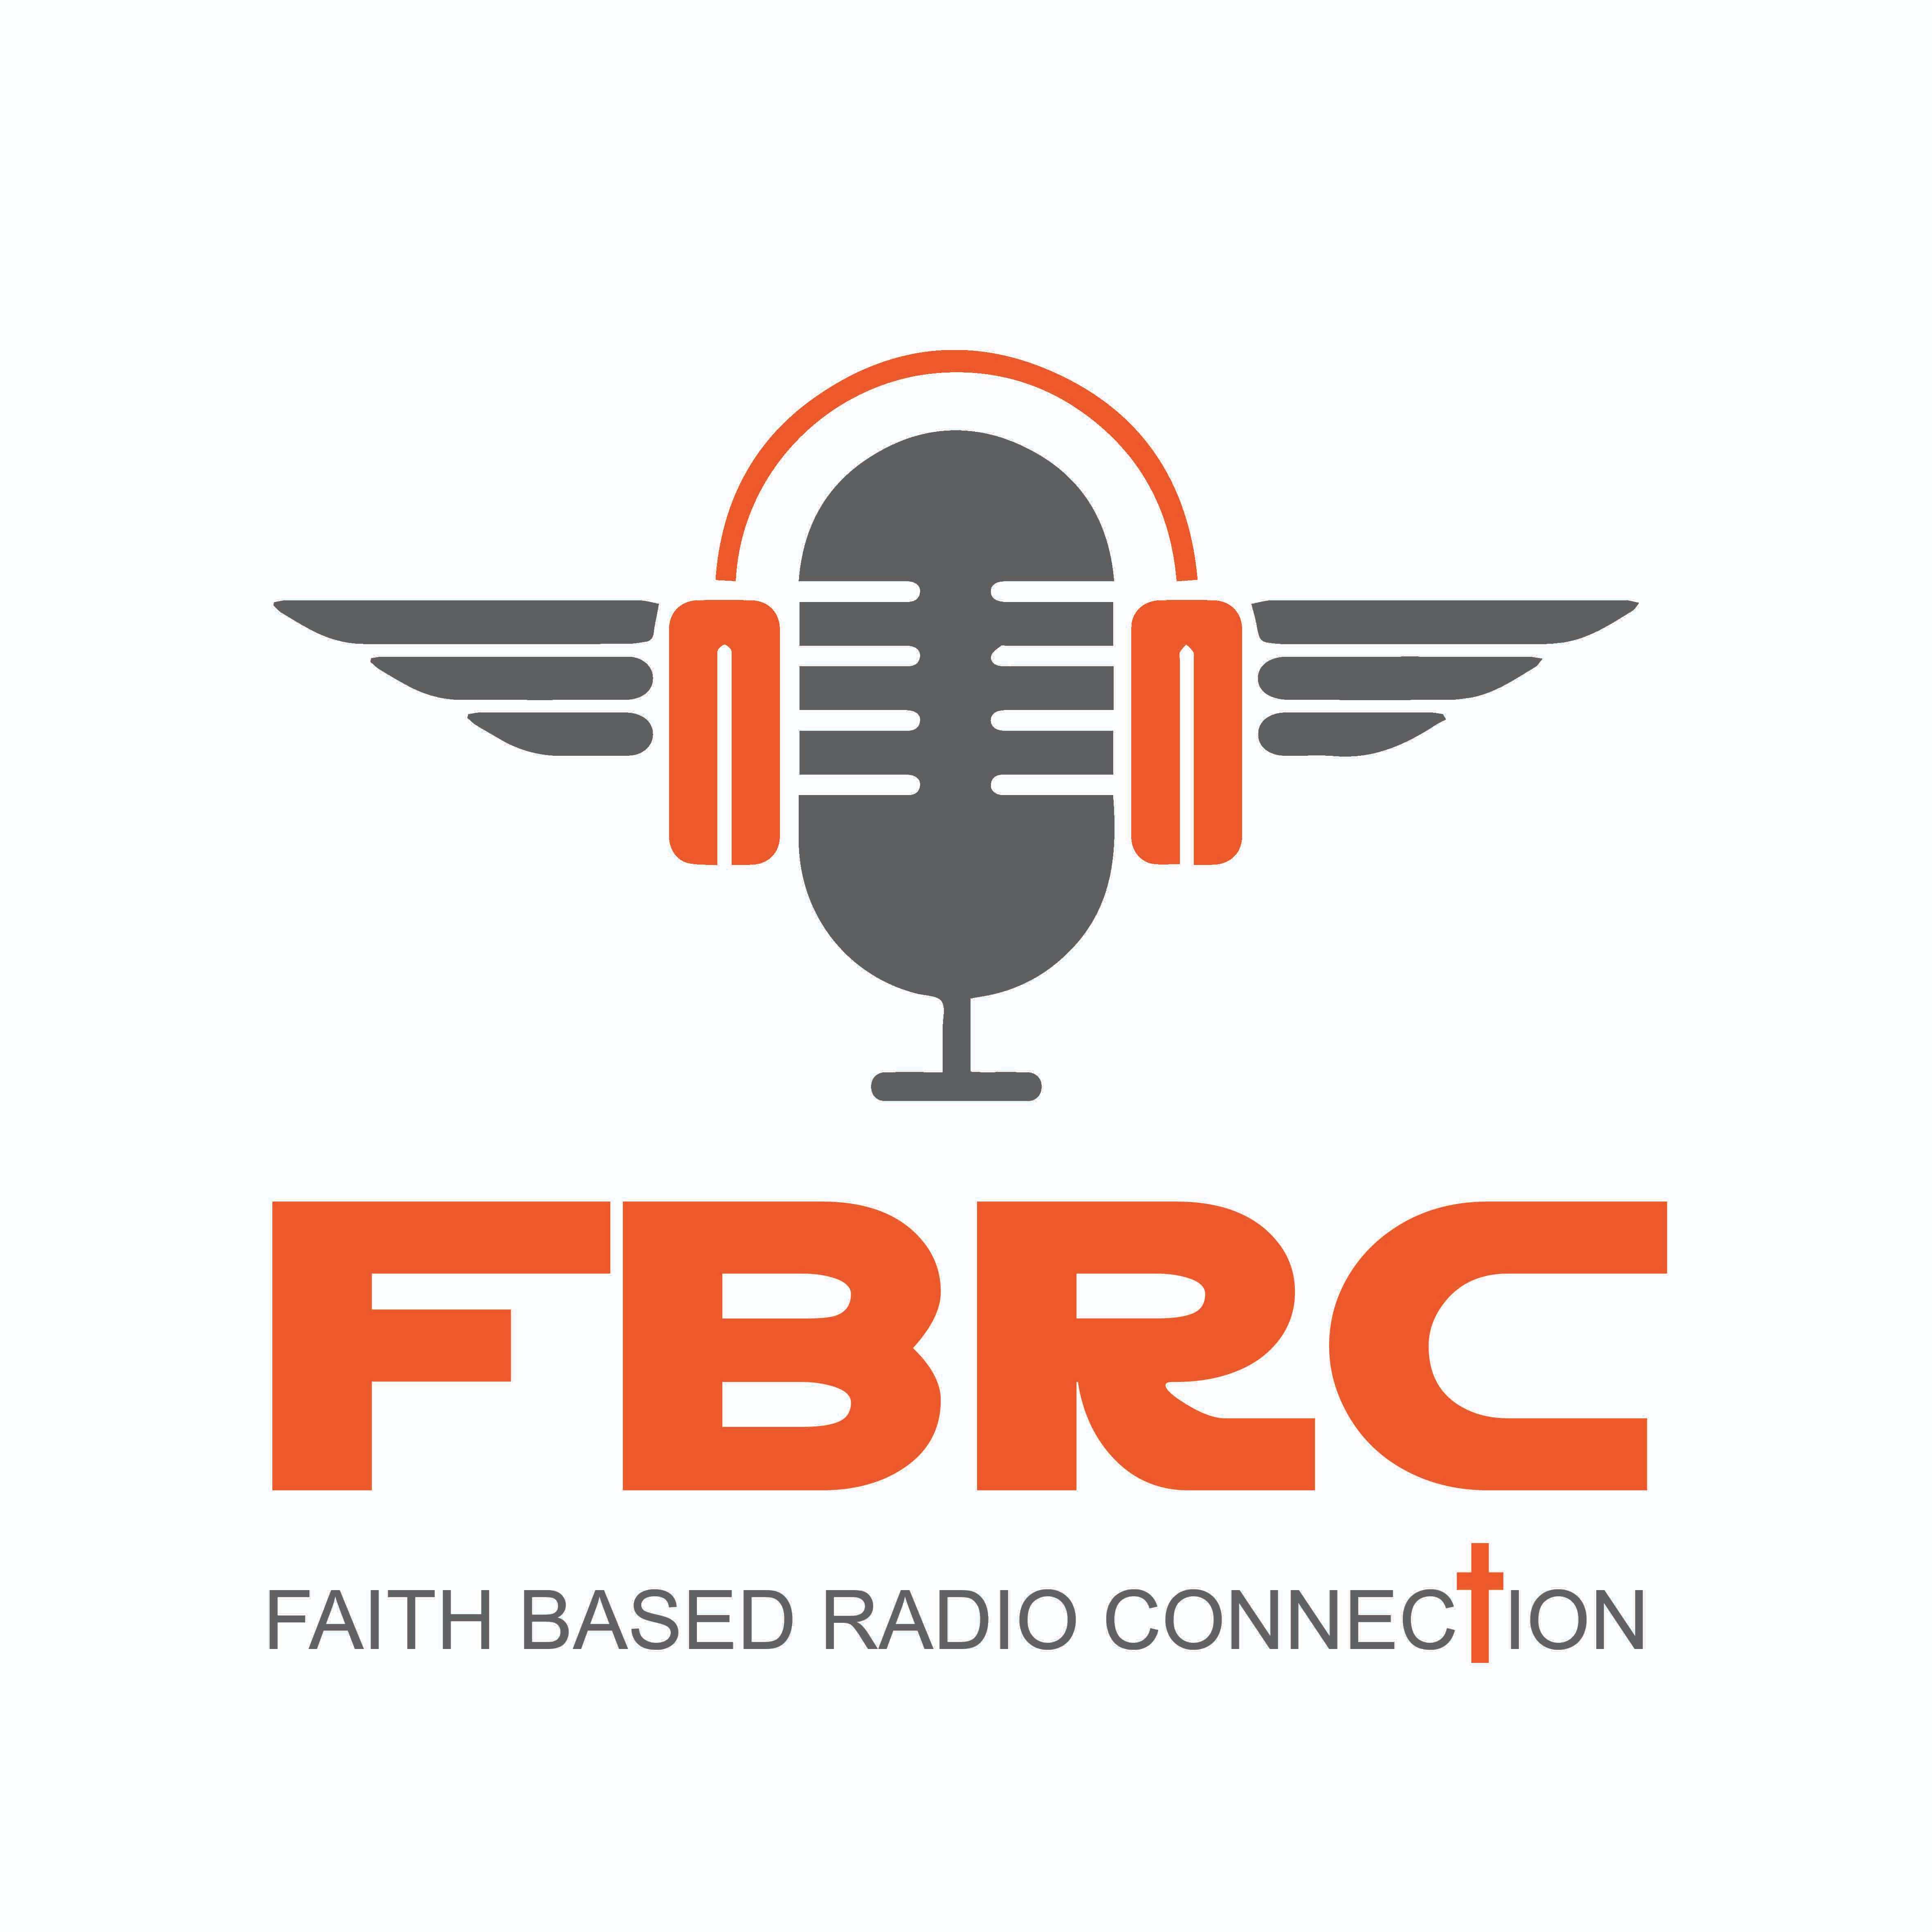 Faith Based Radio Connection